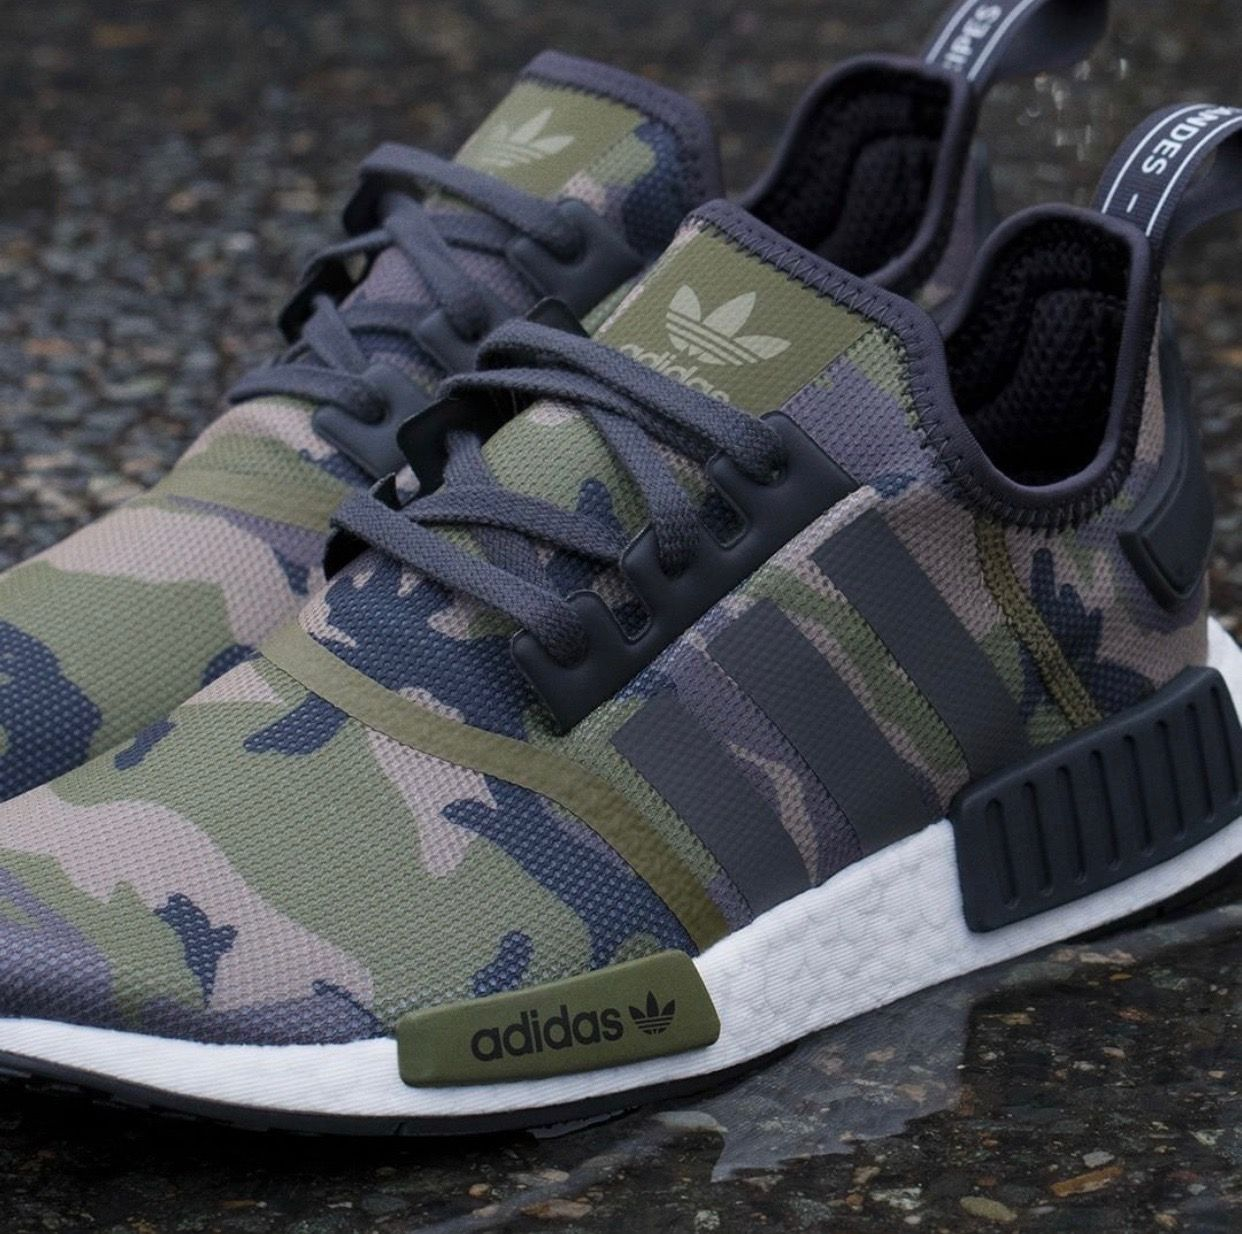 buque de vapor Poner la mesa sexo  Adidas NMD | 2018 | camo | Adidas shoes women, Camo shoes, Sneakers fashion